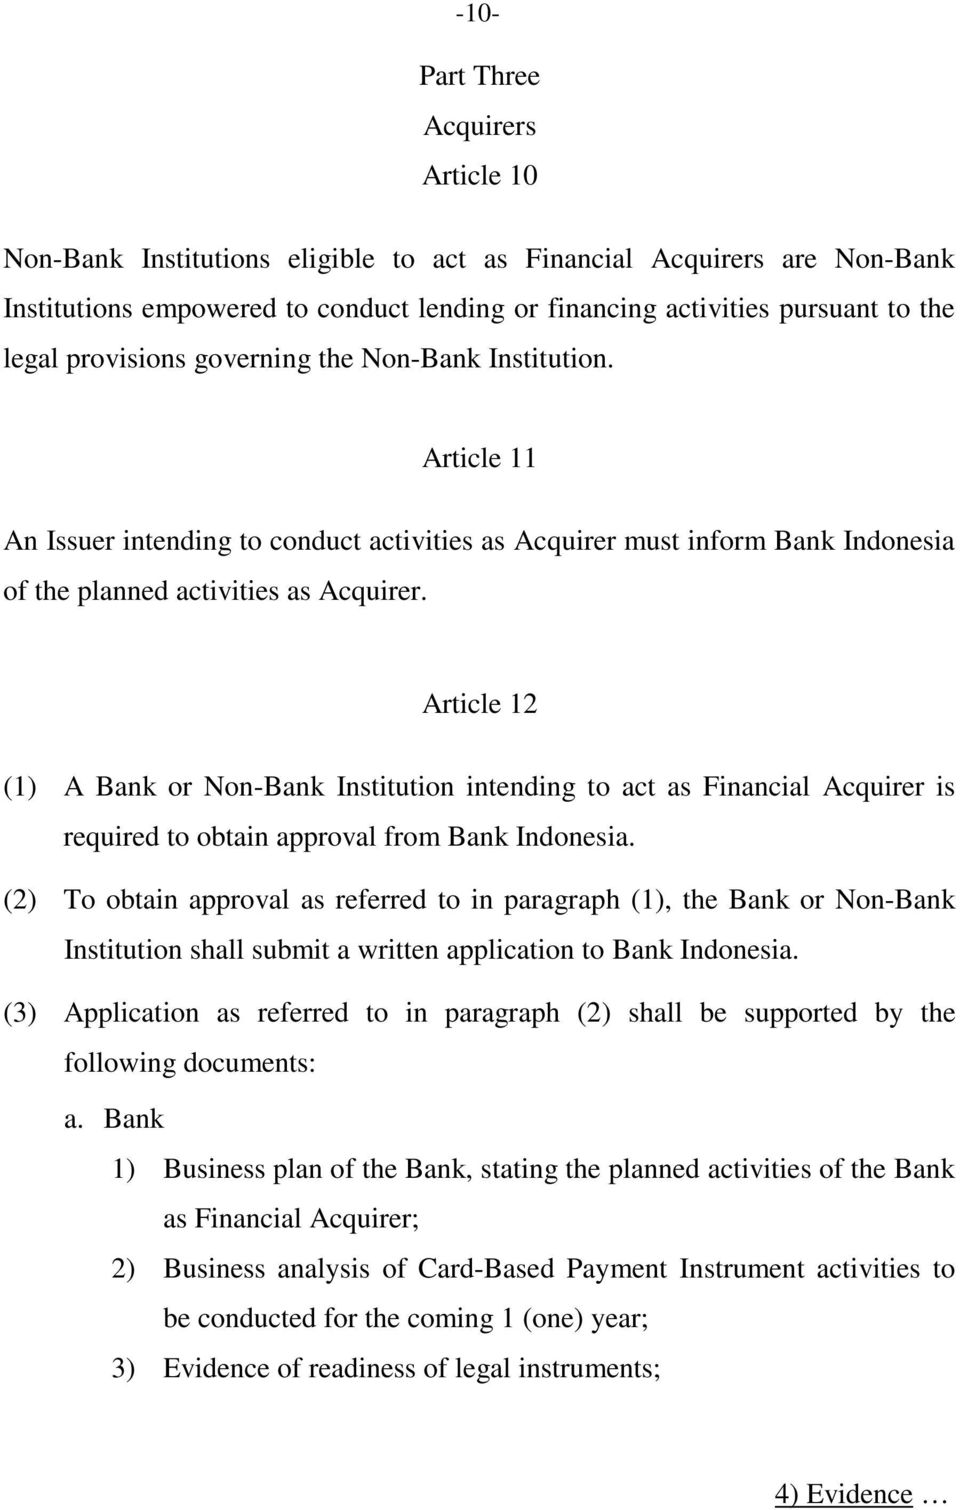 Article 12 (1) A Bank or Non-Bank Institution intending to act as Financial Acquirer is required to obtain approval from Bank Indonesia.